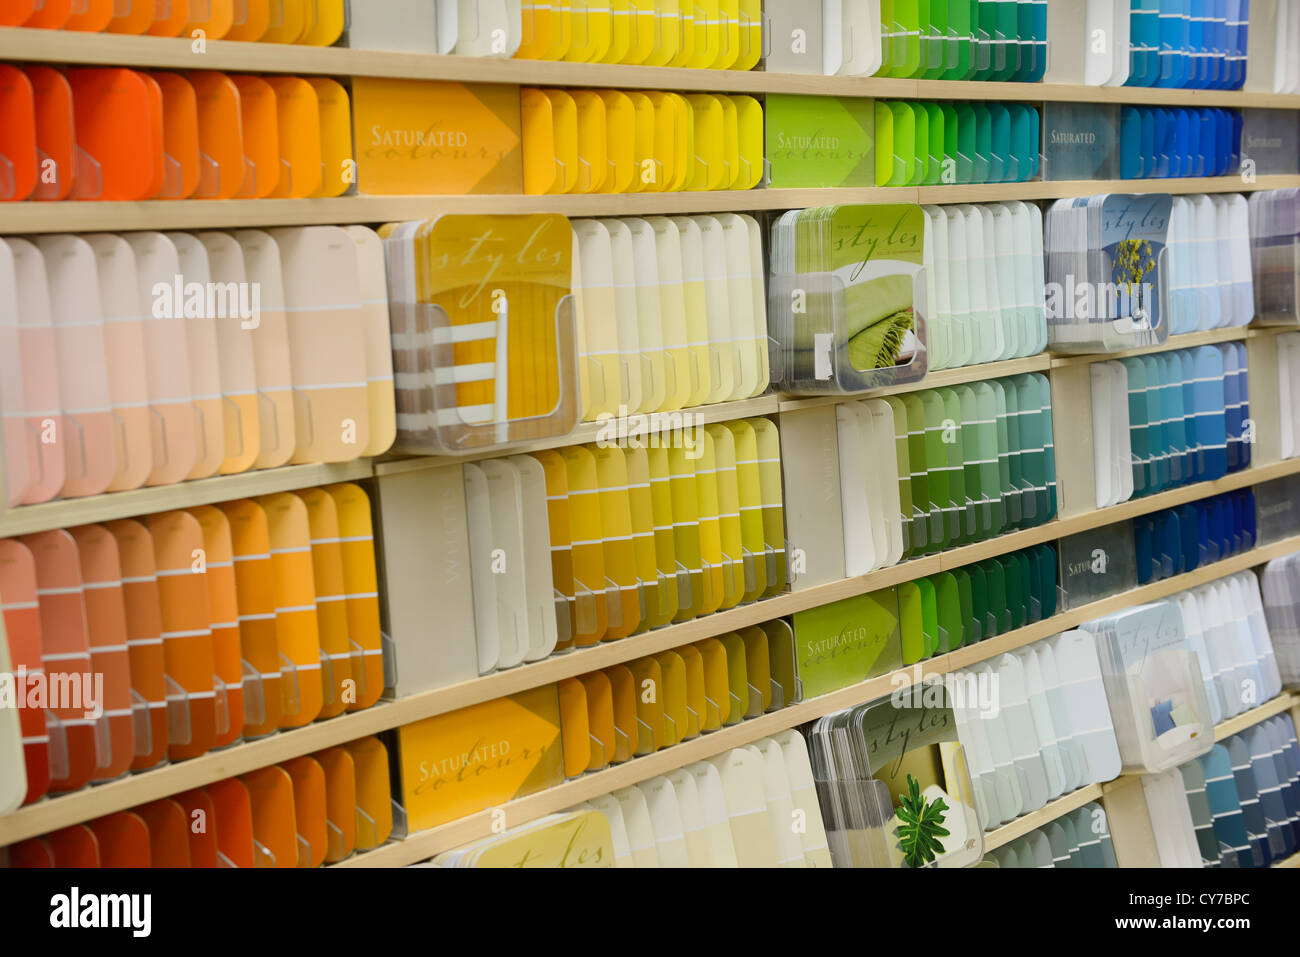 Spectrum of color coded paint chip samples on a display shelf in a hardware store - Stock Image